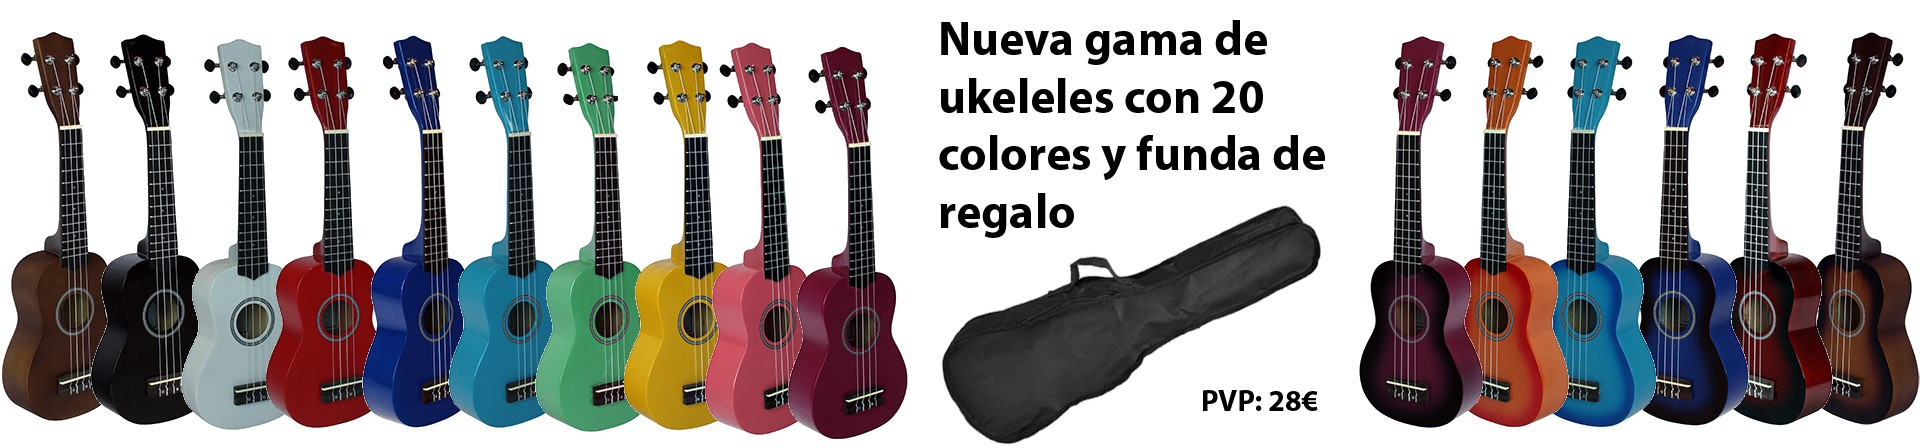 ukeleles 20 colores